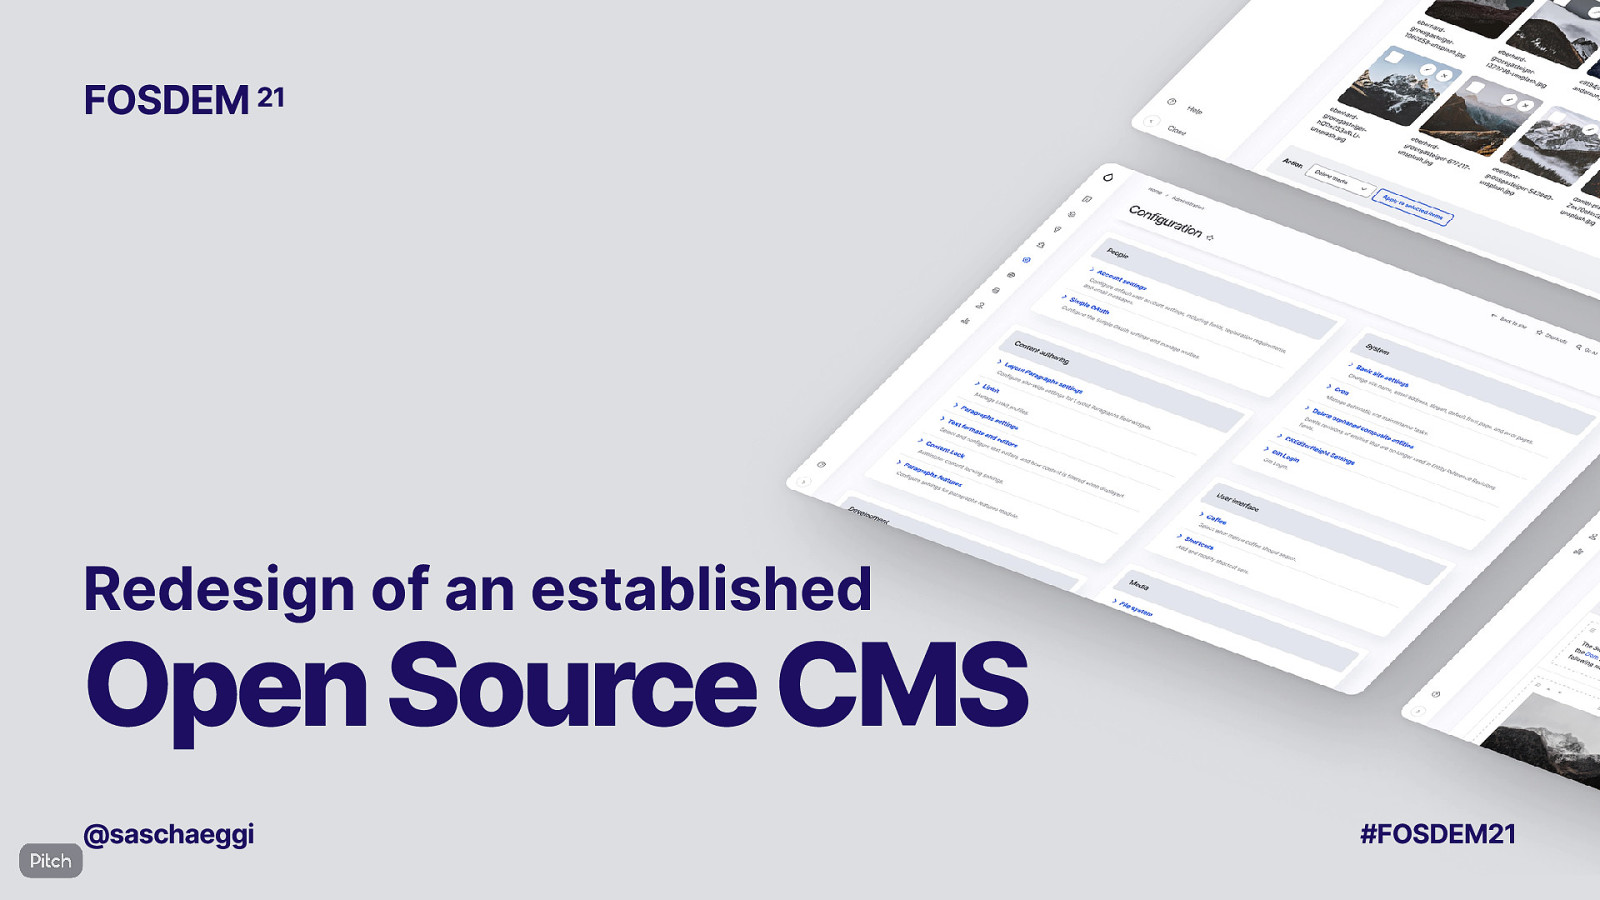 Redesign of an established Open Source CMS